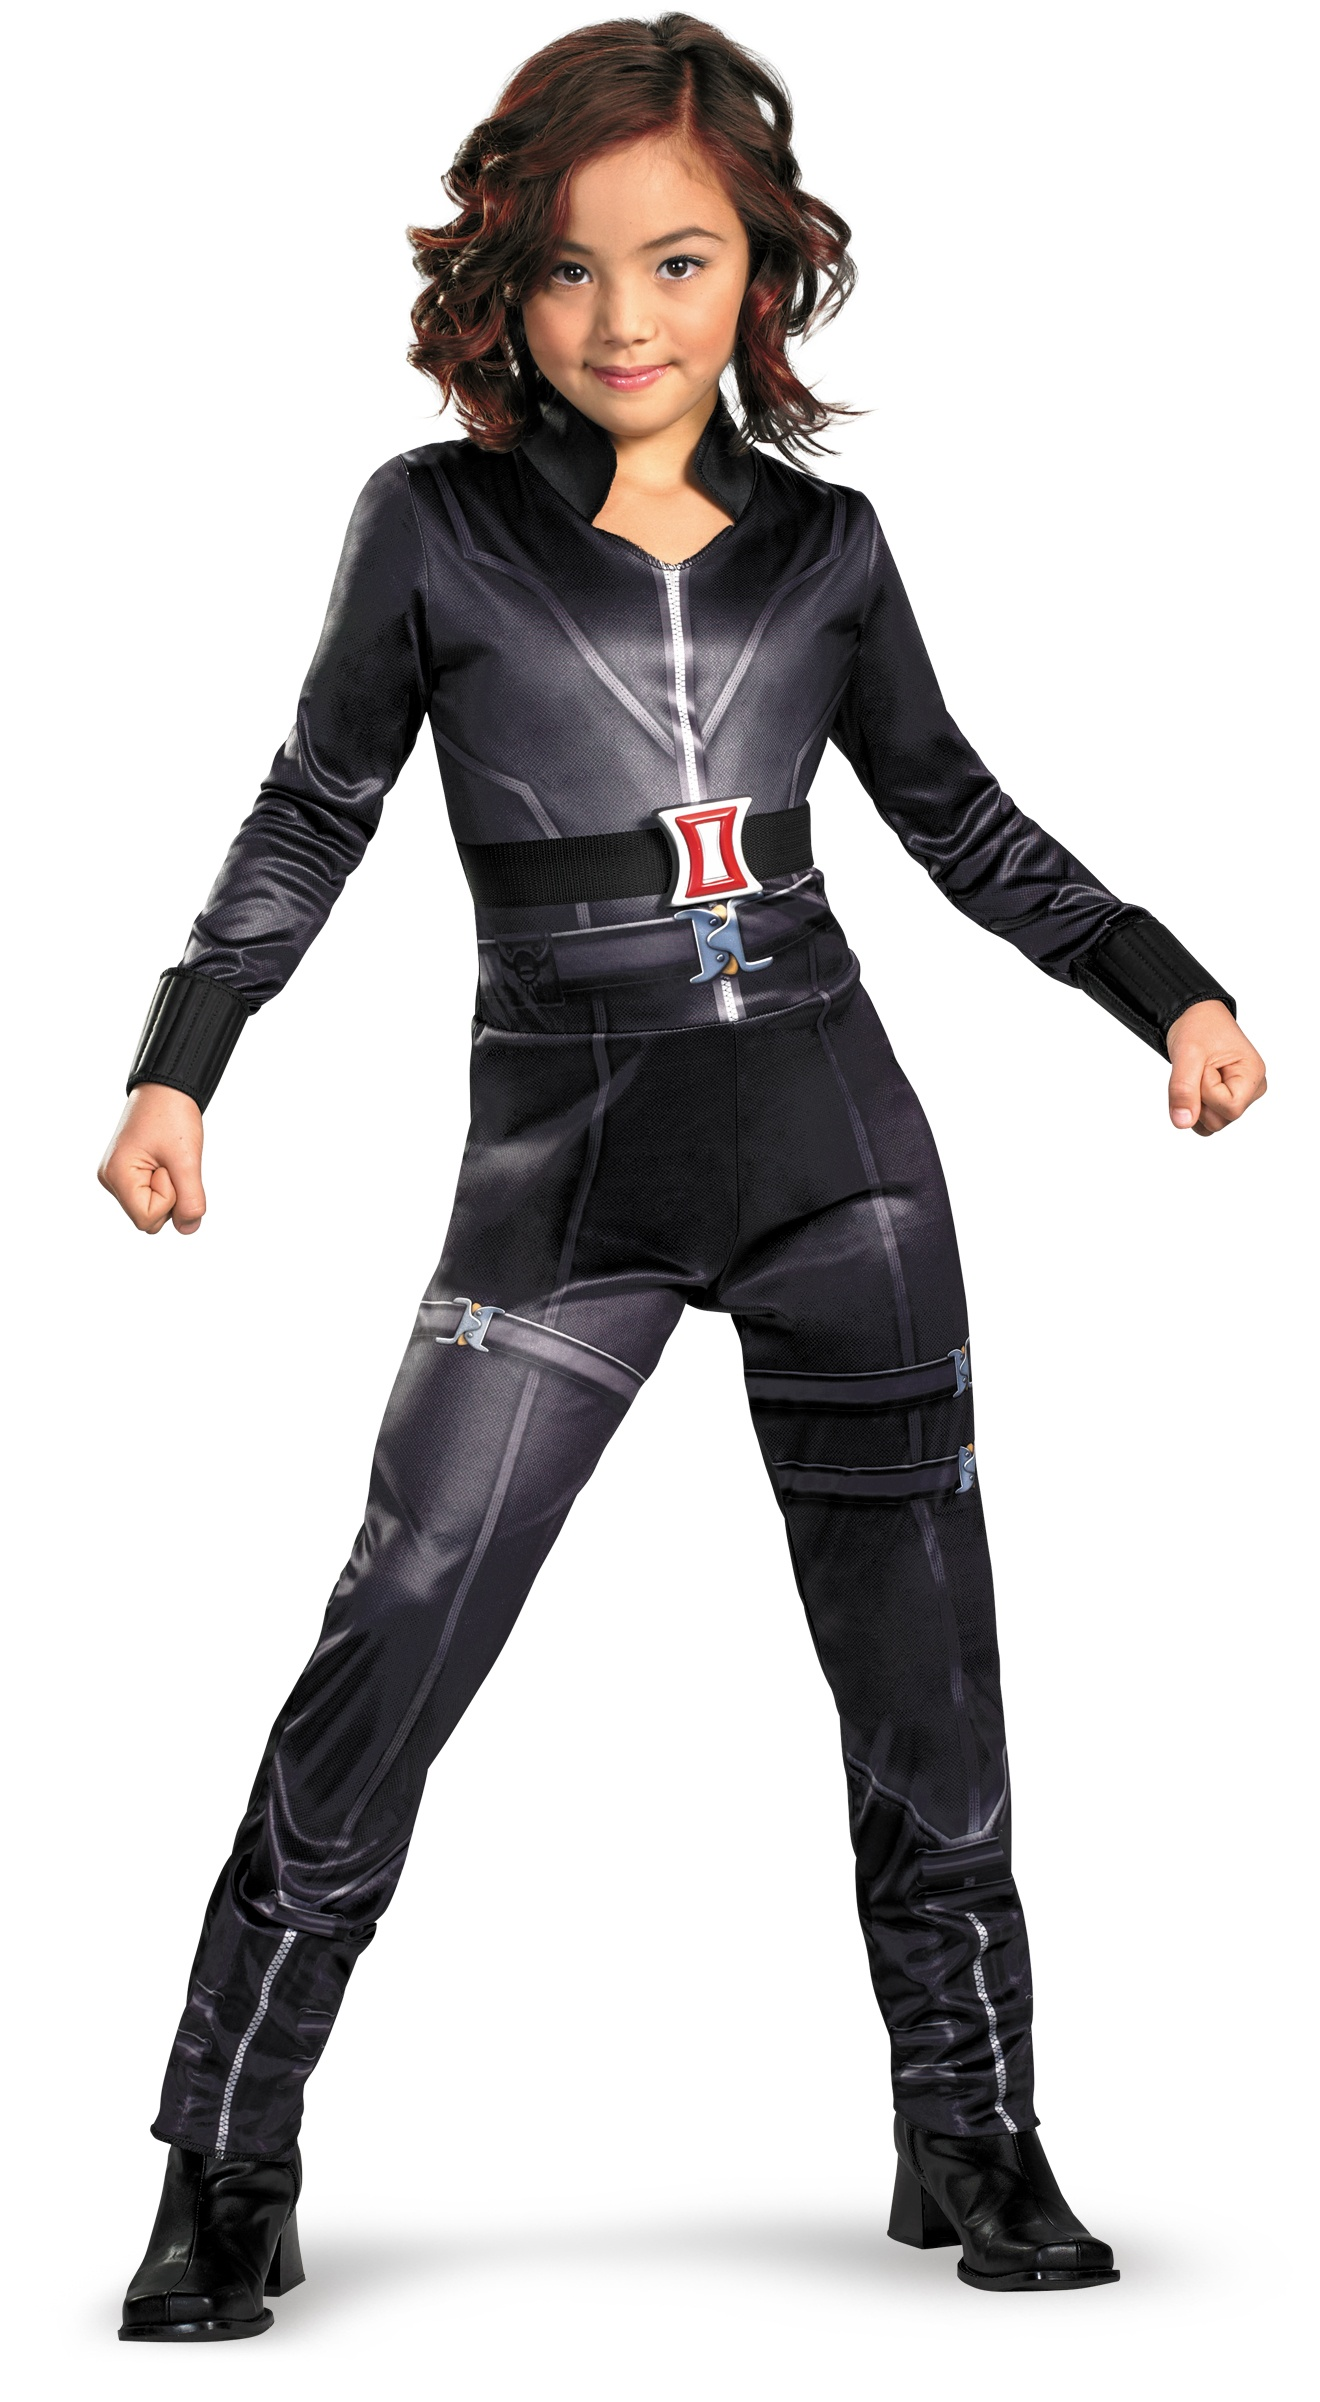 Men's Superhero Costumes Get some added muscle with padded Batman superhero costumes for men or step into a Spider-Man skin suit for your next superhero party. You can also find Deadpool men's costumes from the sci-fi action film, Mr. Incredible jumpsuits, and even Buzz Lightyear costumes .